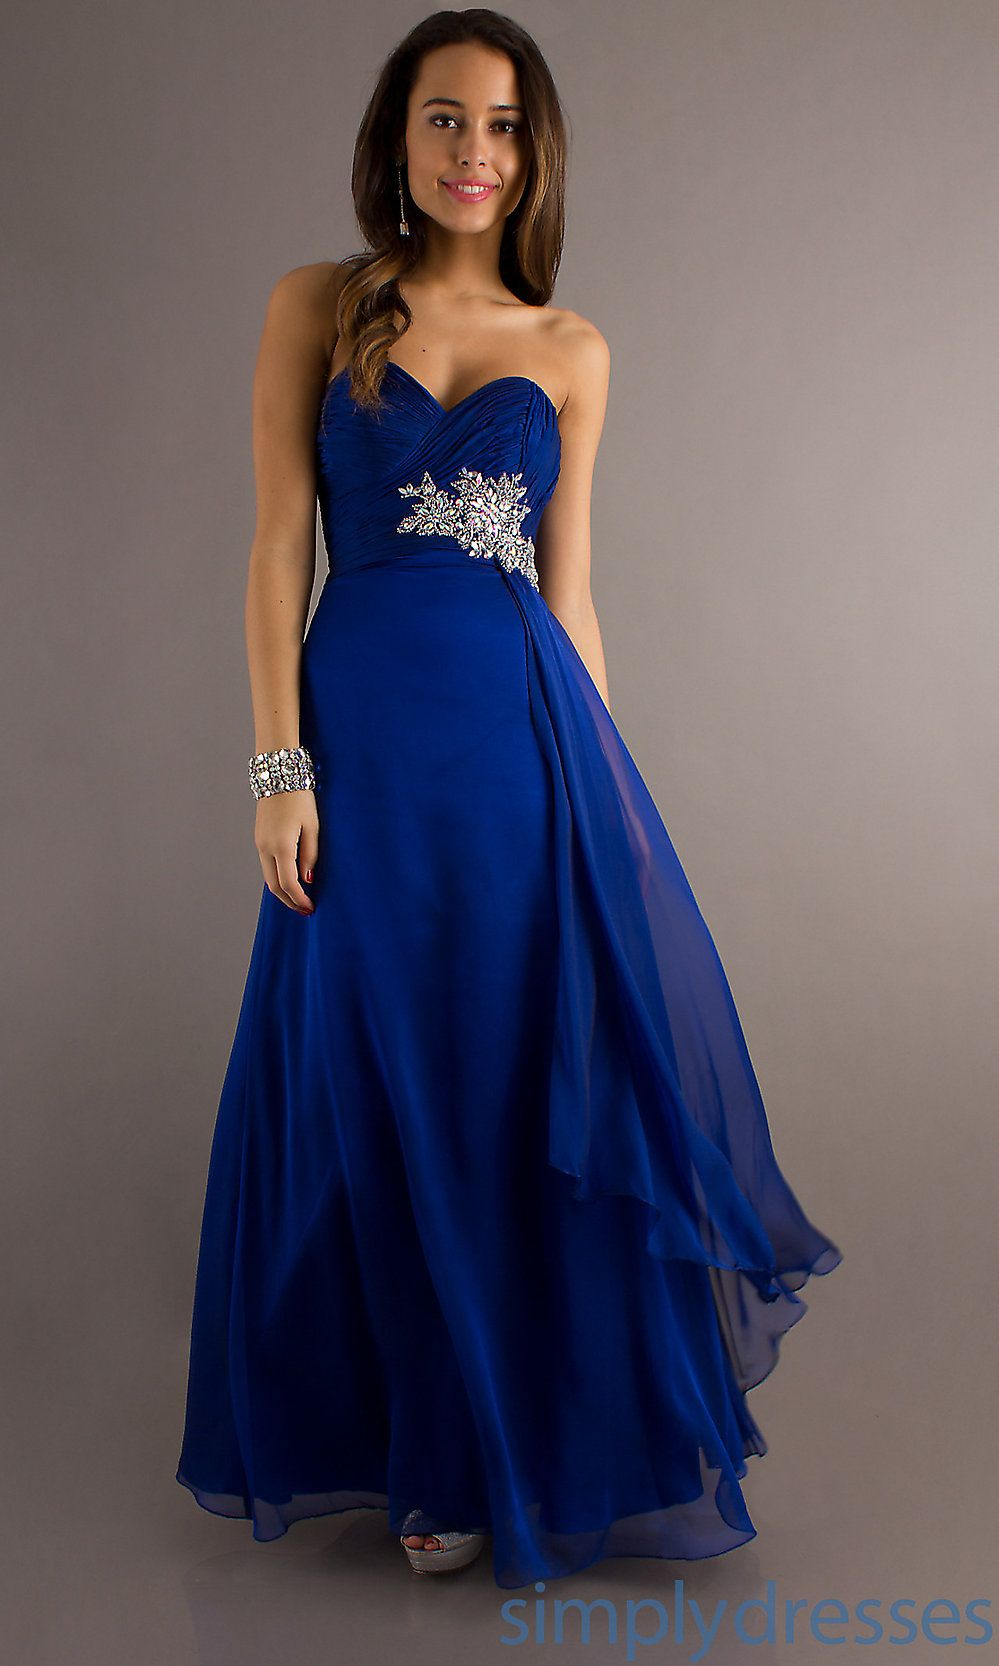 Dresses formal prom dresses evening wear temptation floor length